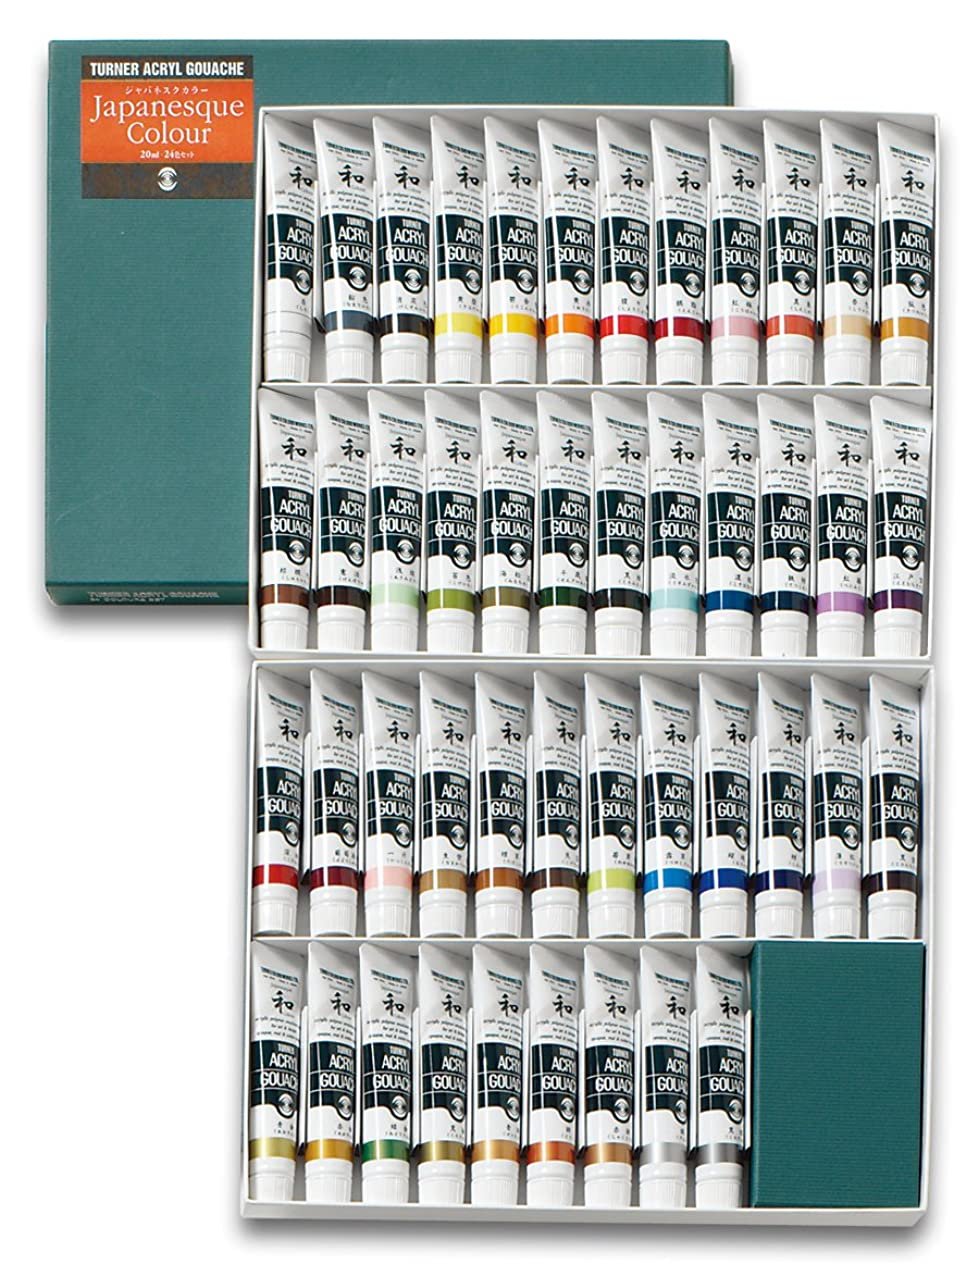 Turner Acrylic Paint Set Japanesque Artist Acryl Gouache - Based on Traditional Japanese Colors from Nature, Coarse, Rough, Gritty Texture - [Set of 45 | 20 ml Tubes]